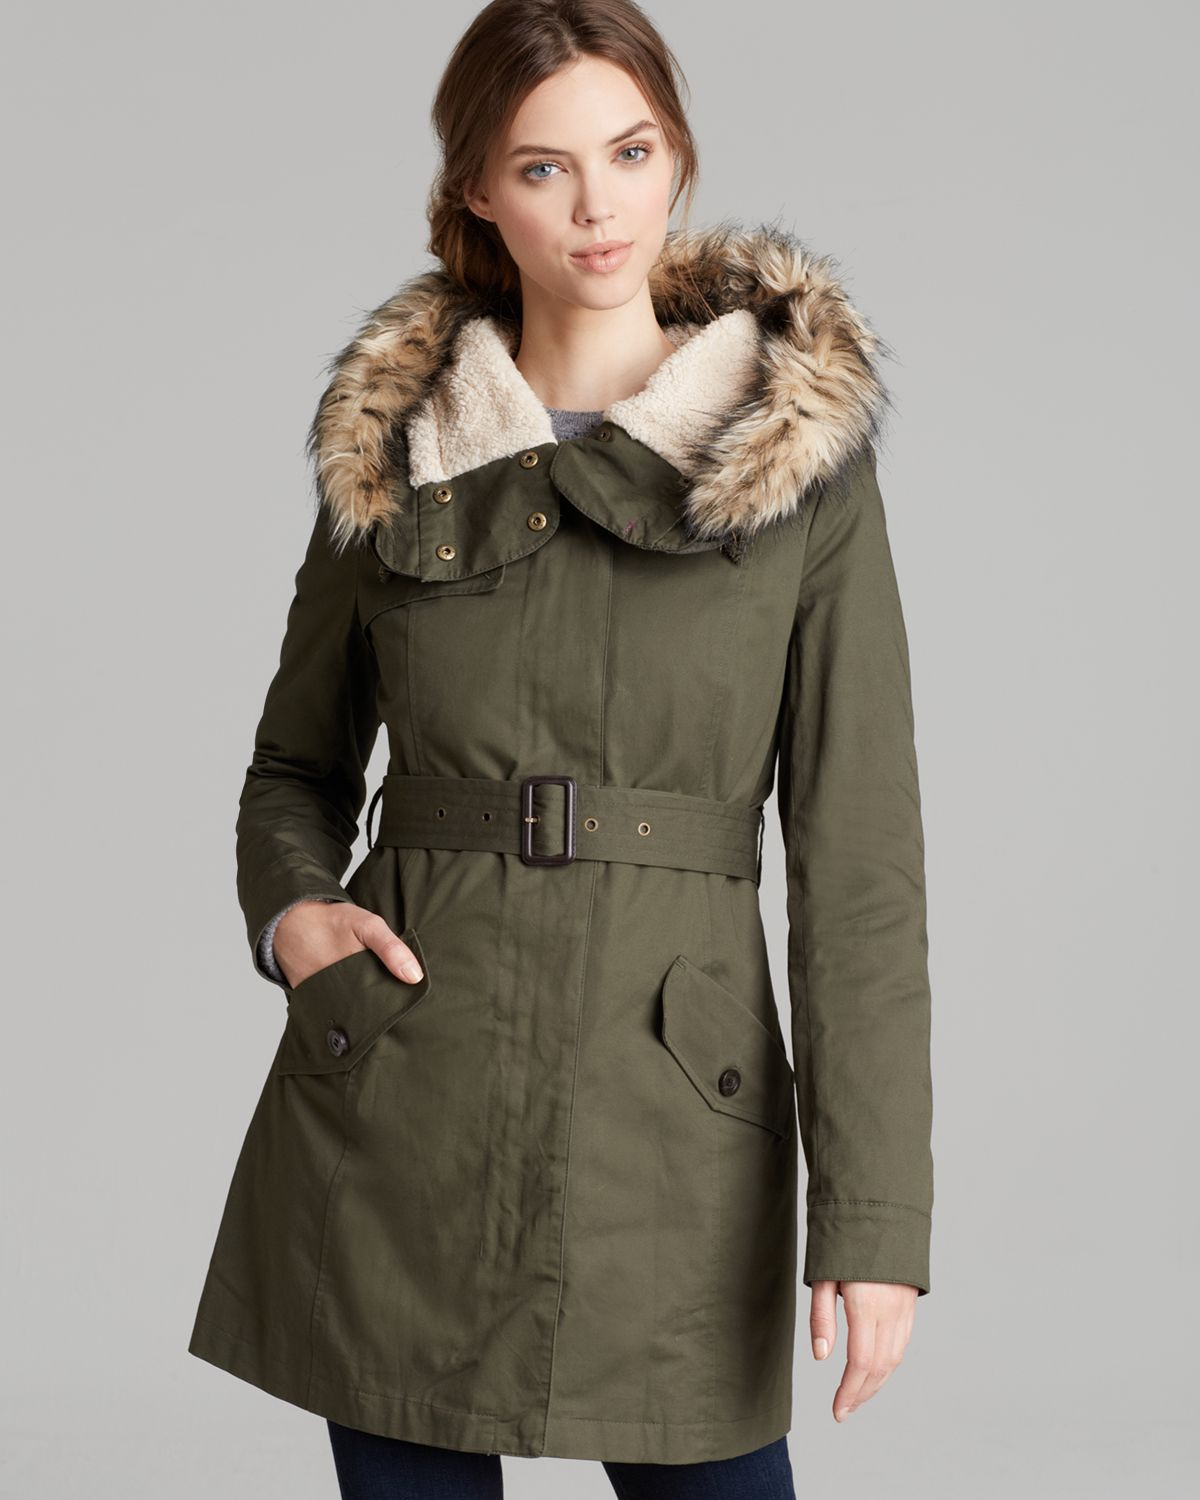 Dkny Coat Faux Fur Trimmed Hooded In Military Green